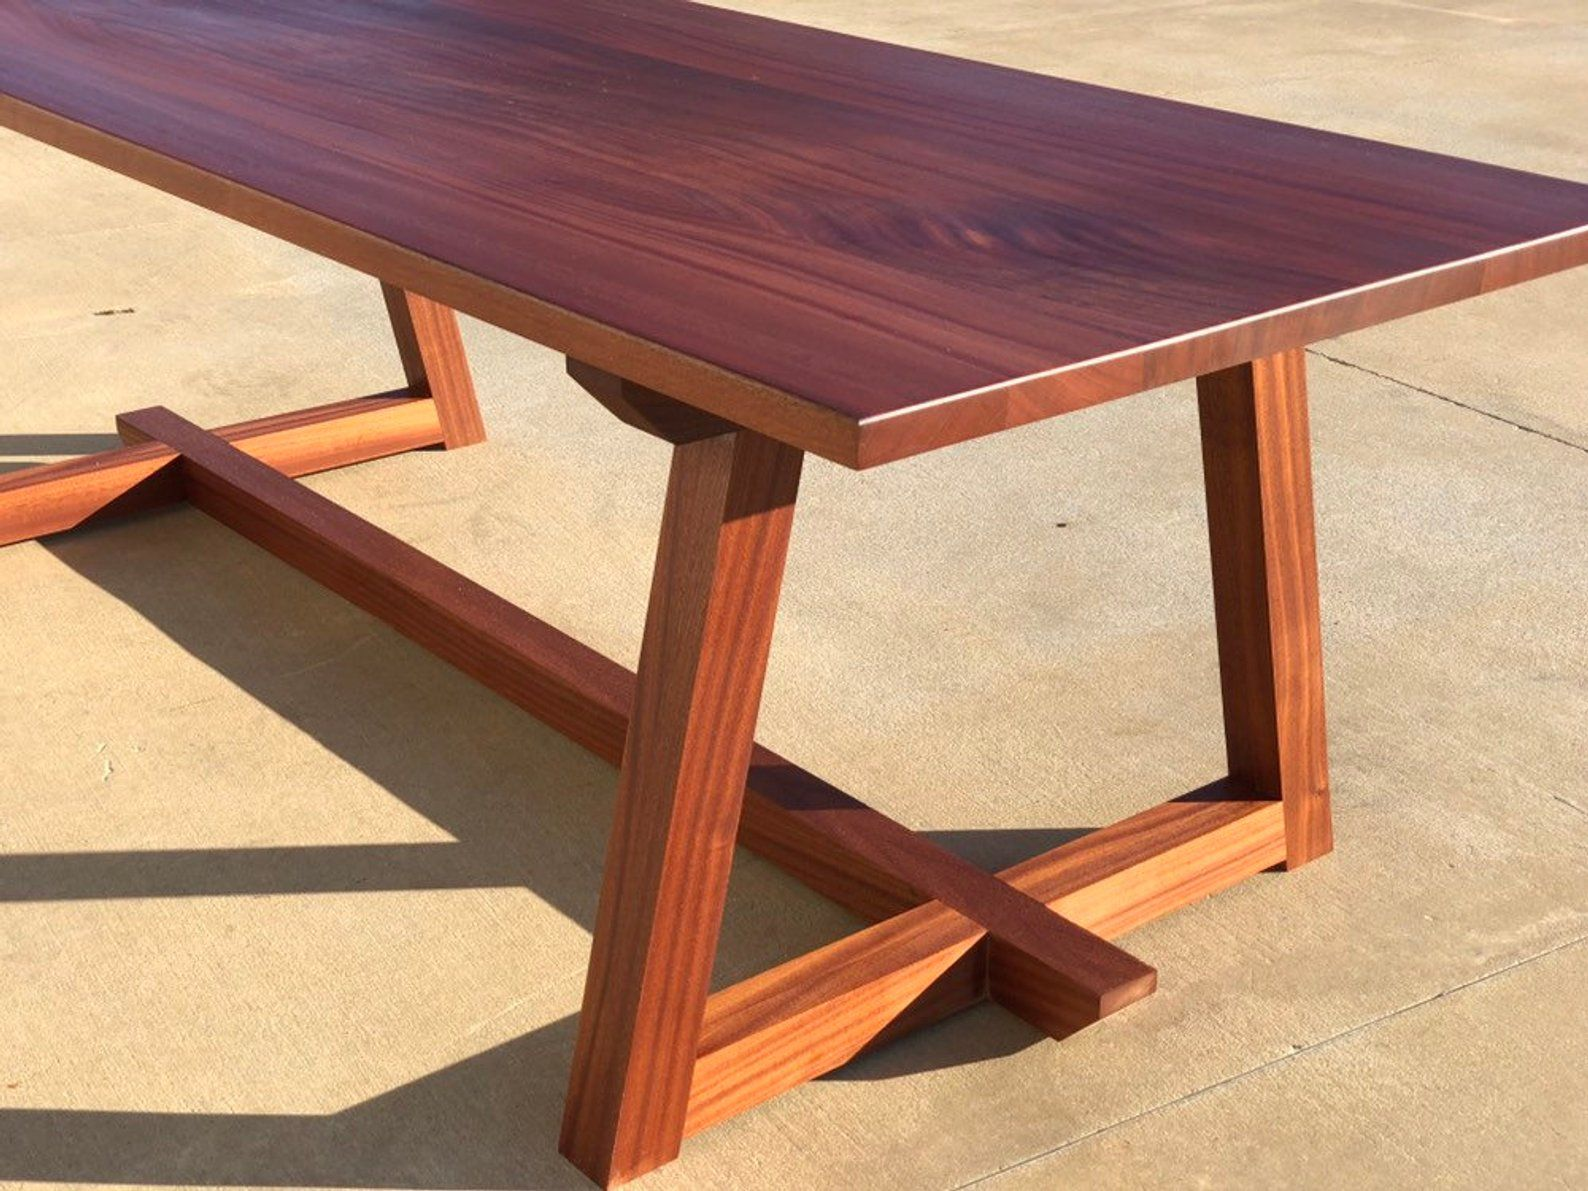 Modern Sapele Wood Dining Table Mahogany Trestle Etsy In 2020